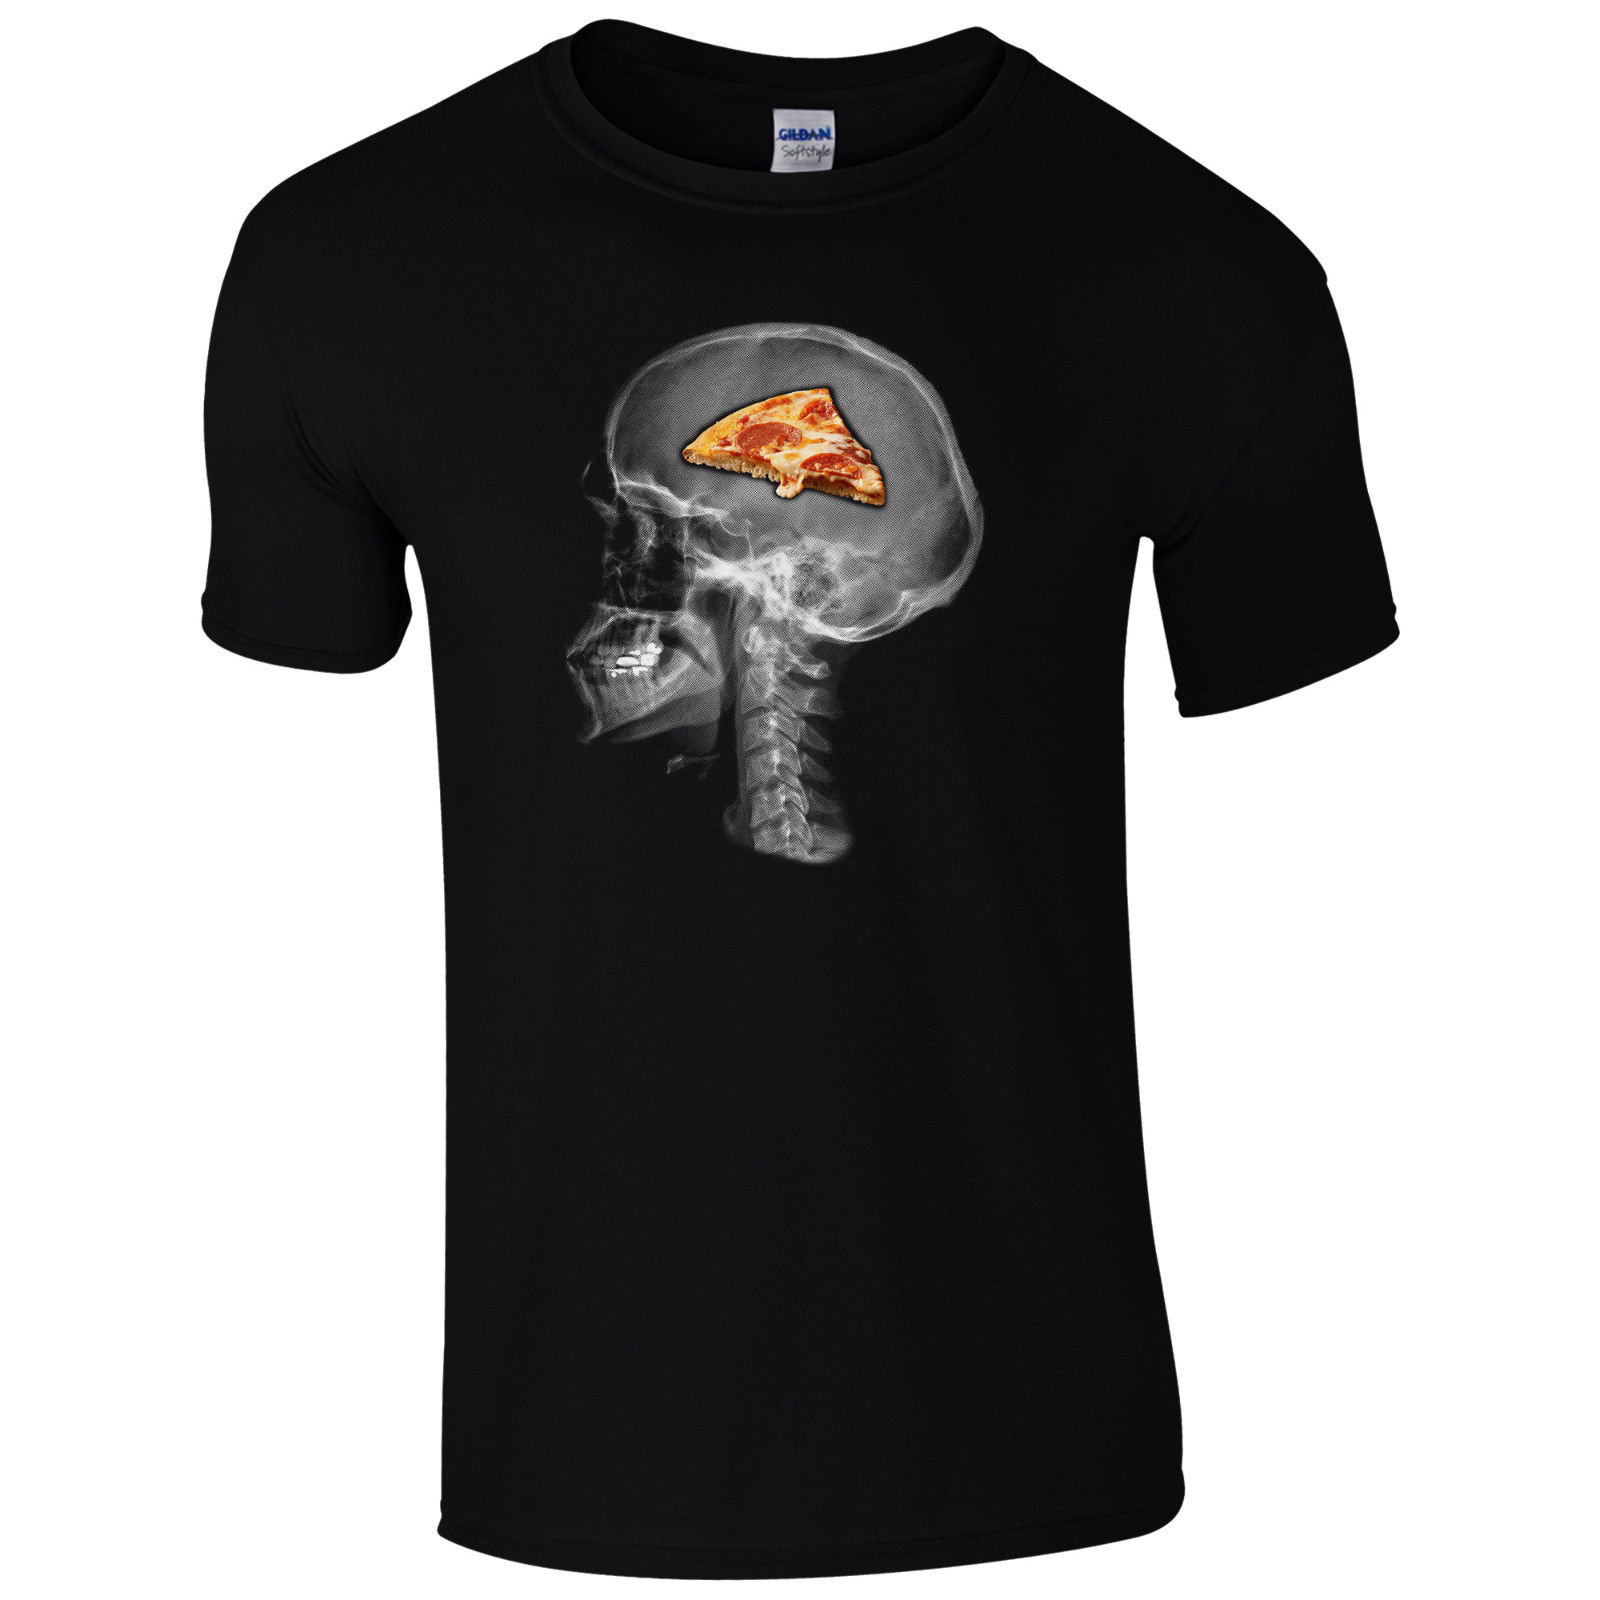 Pizza On The Brain T-Shirt - Funny Skull X-Ray Food Lovers Gift Unisex Mens Top image